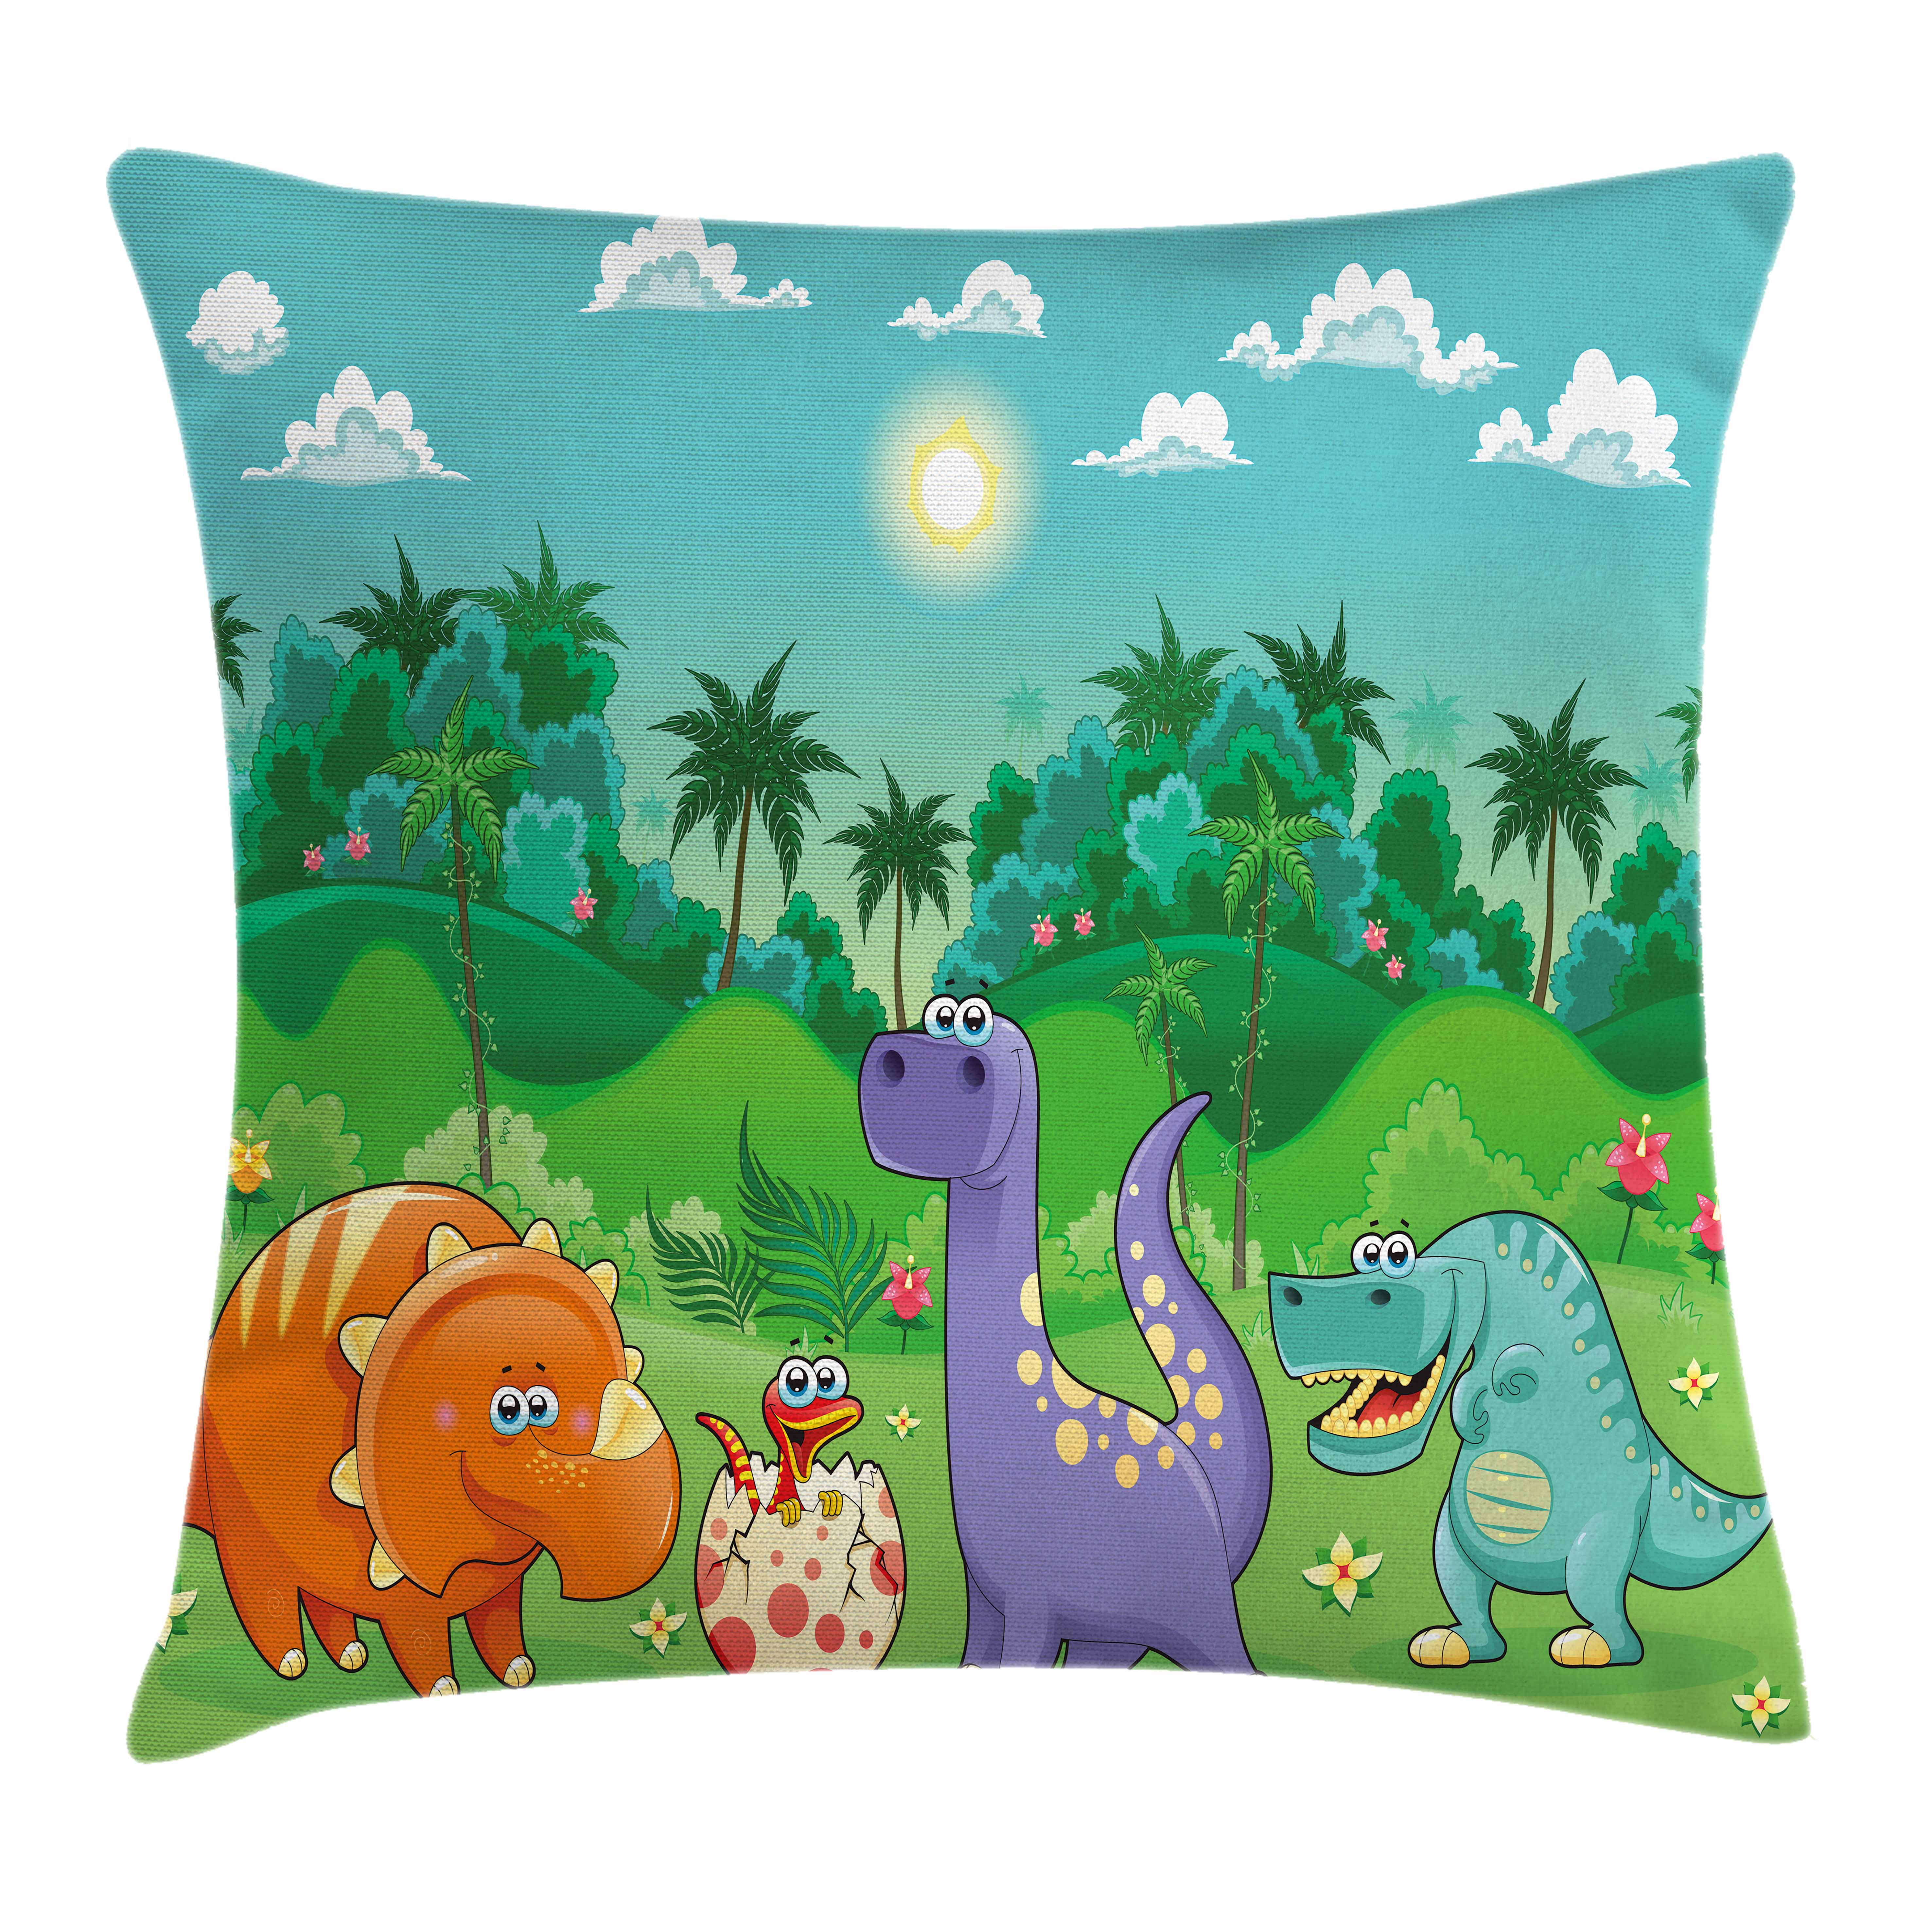 Nursery Throw Pillow Cushion Cover, Funny Dinosaurs and Tropical Rainforest Cartoon Jungle Green Landscape Kids Theme, Decorative Square Accent Pillow Case, 16 X 16 Inches, Multicolor, by Ambesonne